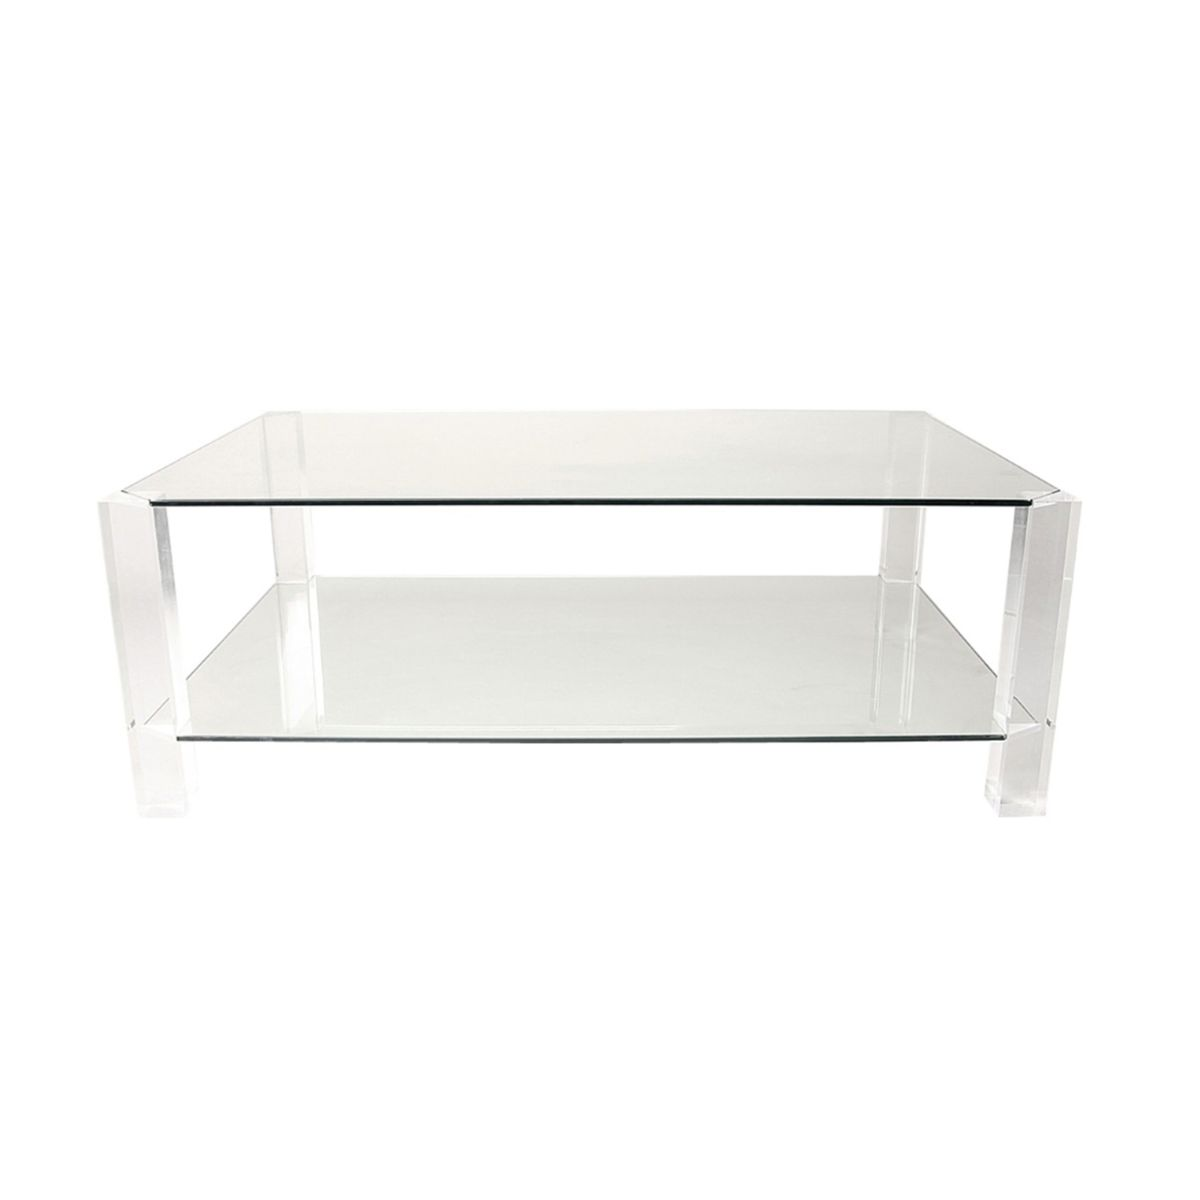 Glass lucite coffee table by andrew sarah hills for porta romana 2003